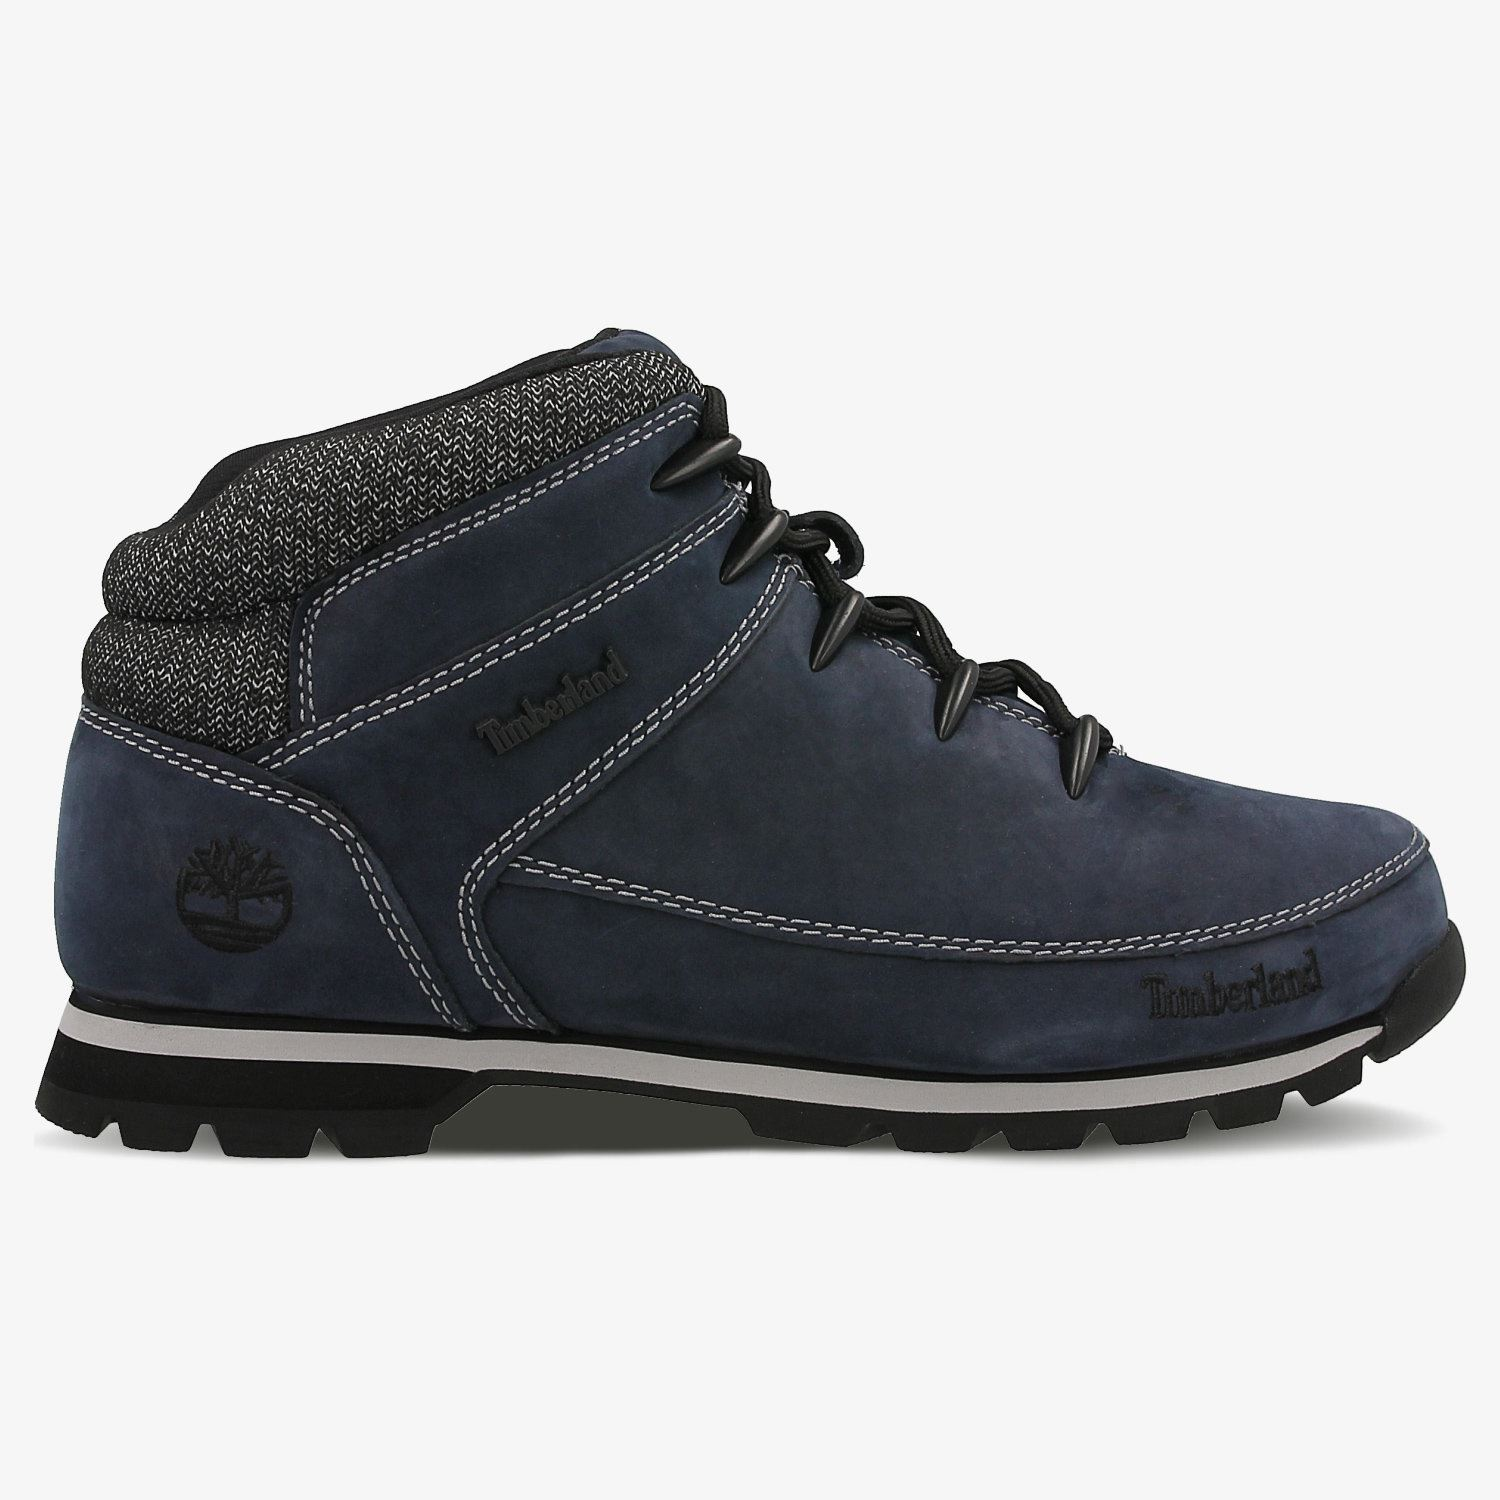 4f5ae0ee Details about TIMBERLAND EURO SPRINT HIKER BLUE MEN'S A18QT UK 7-11